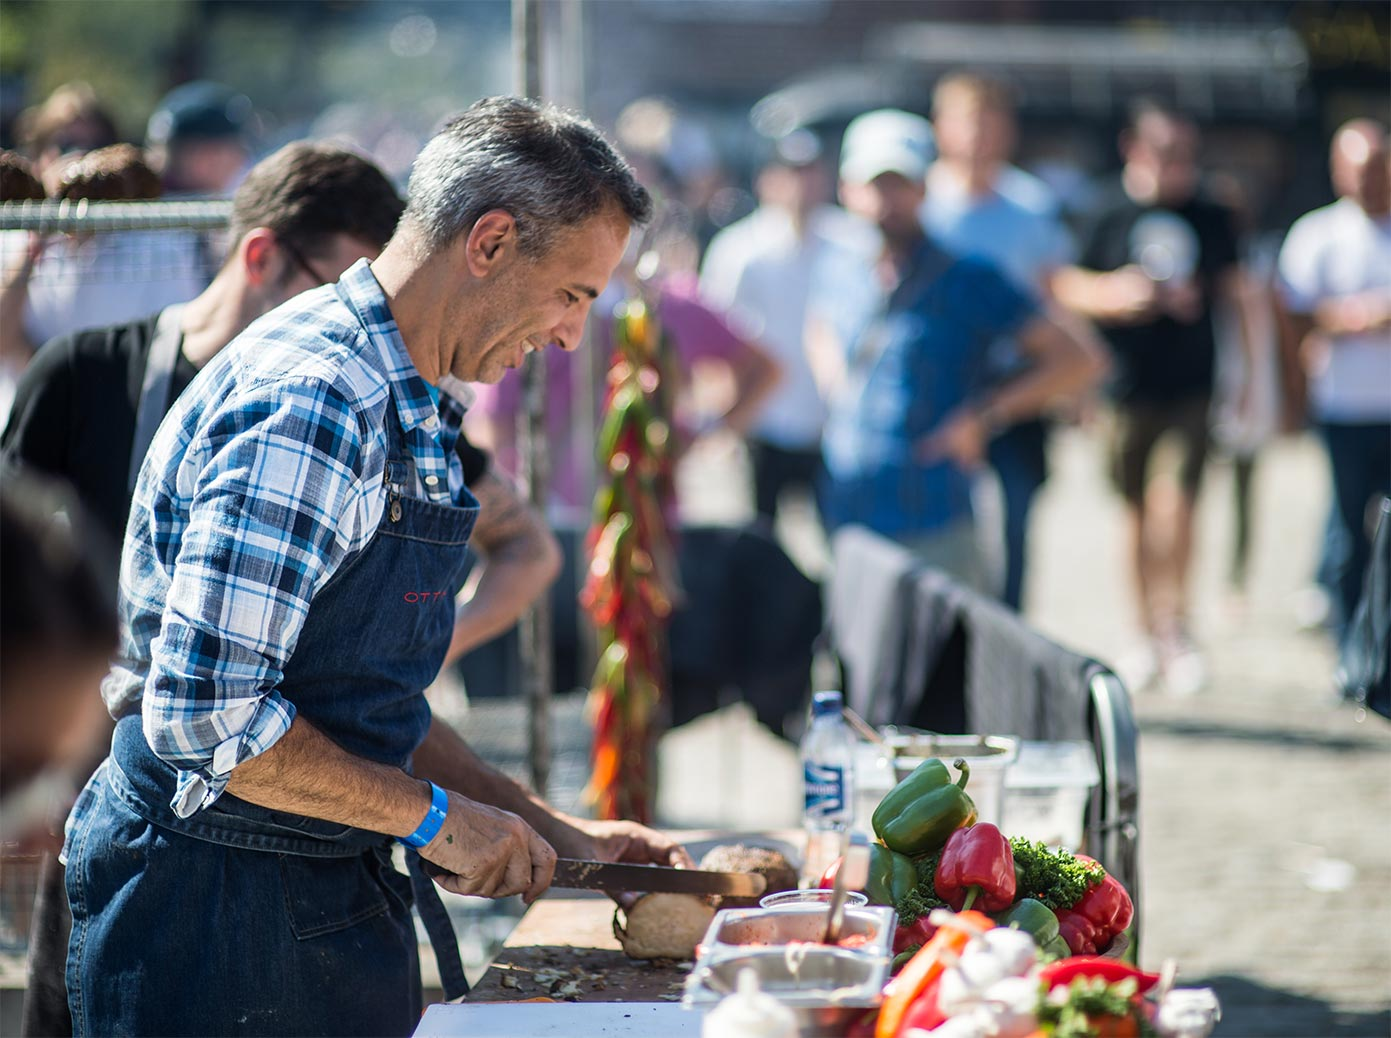 Yotam Ottolenghi at Meatopia 2018